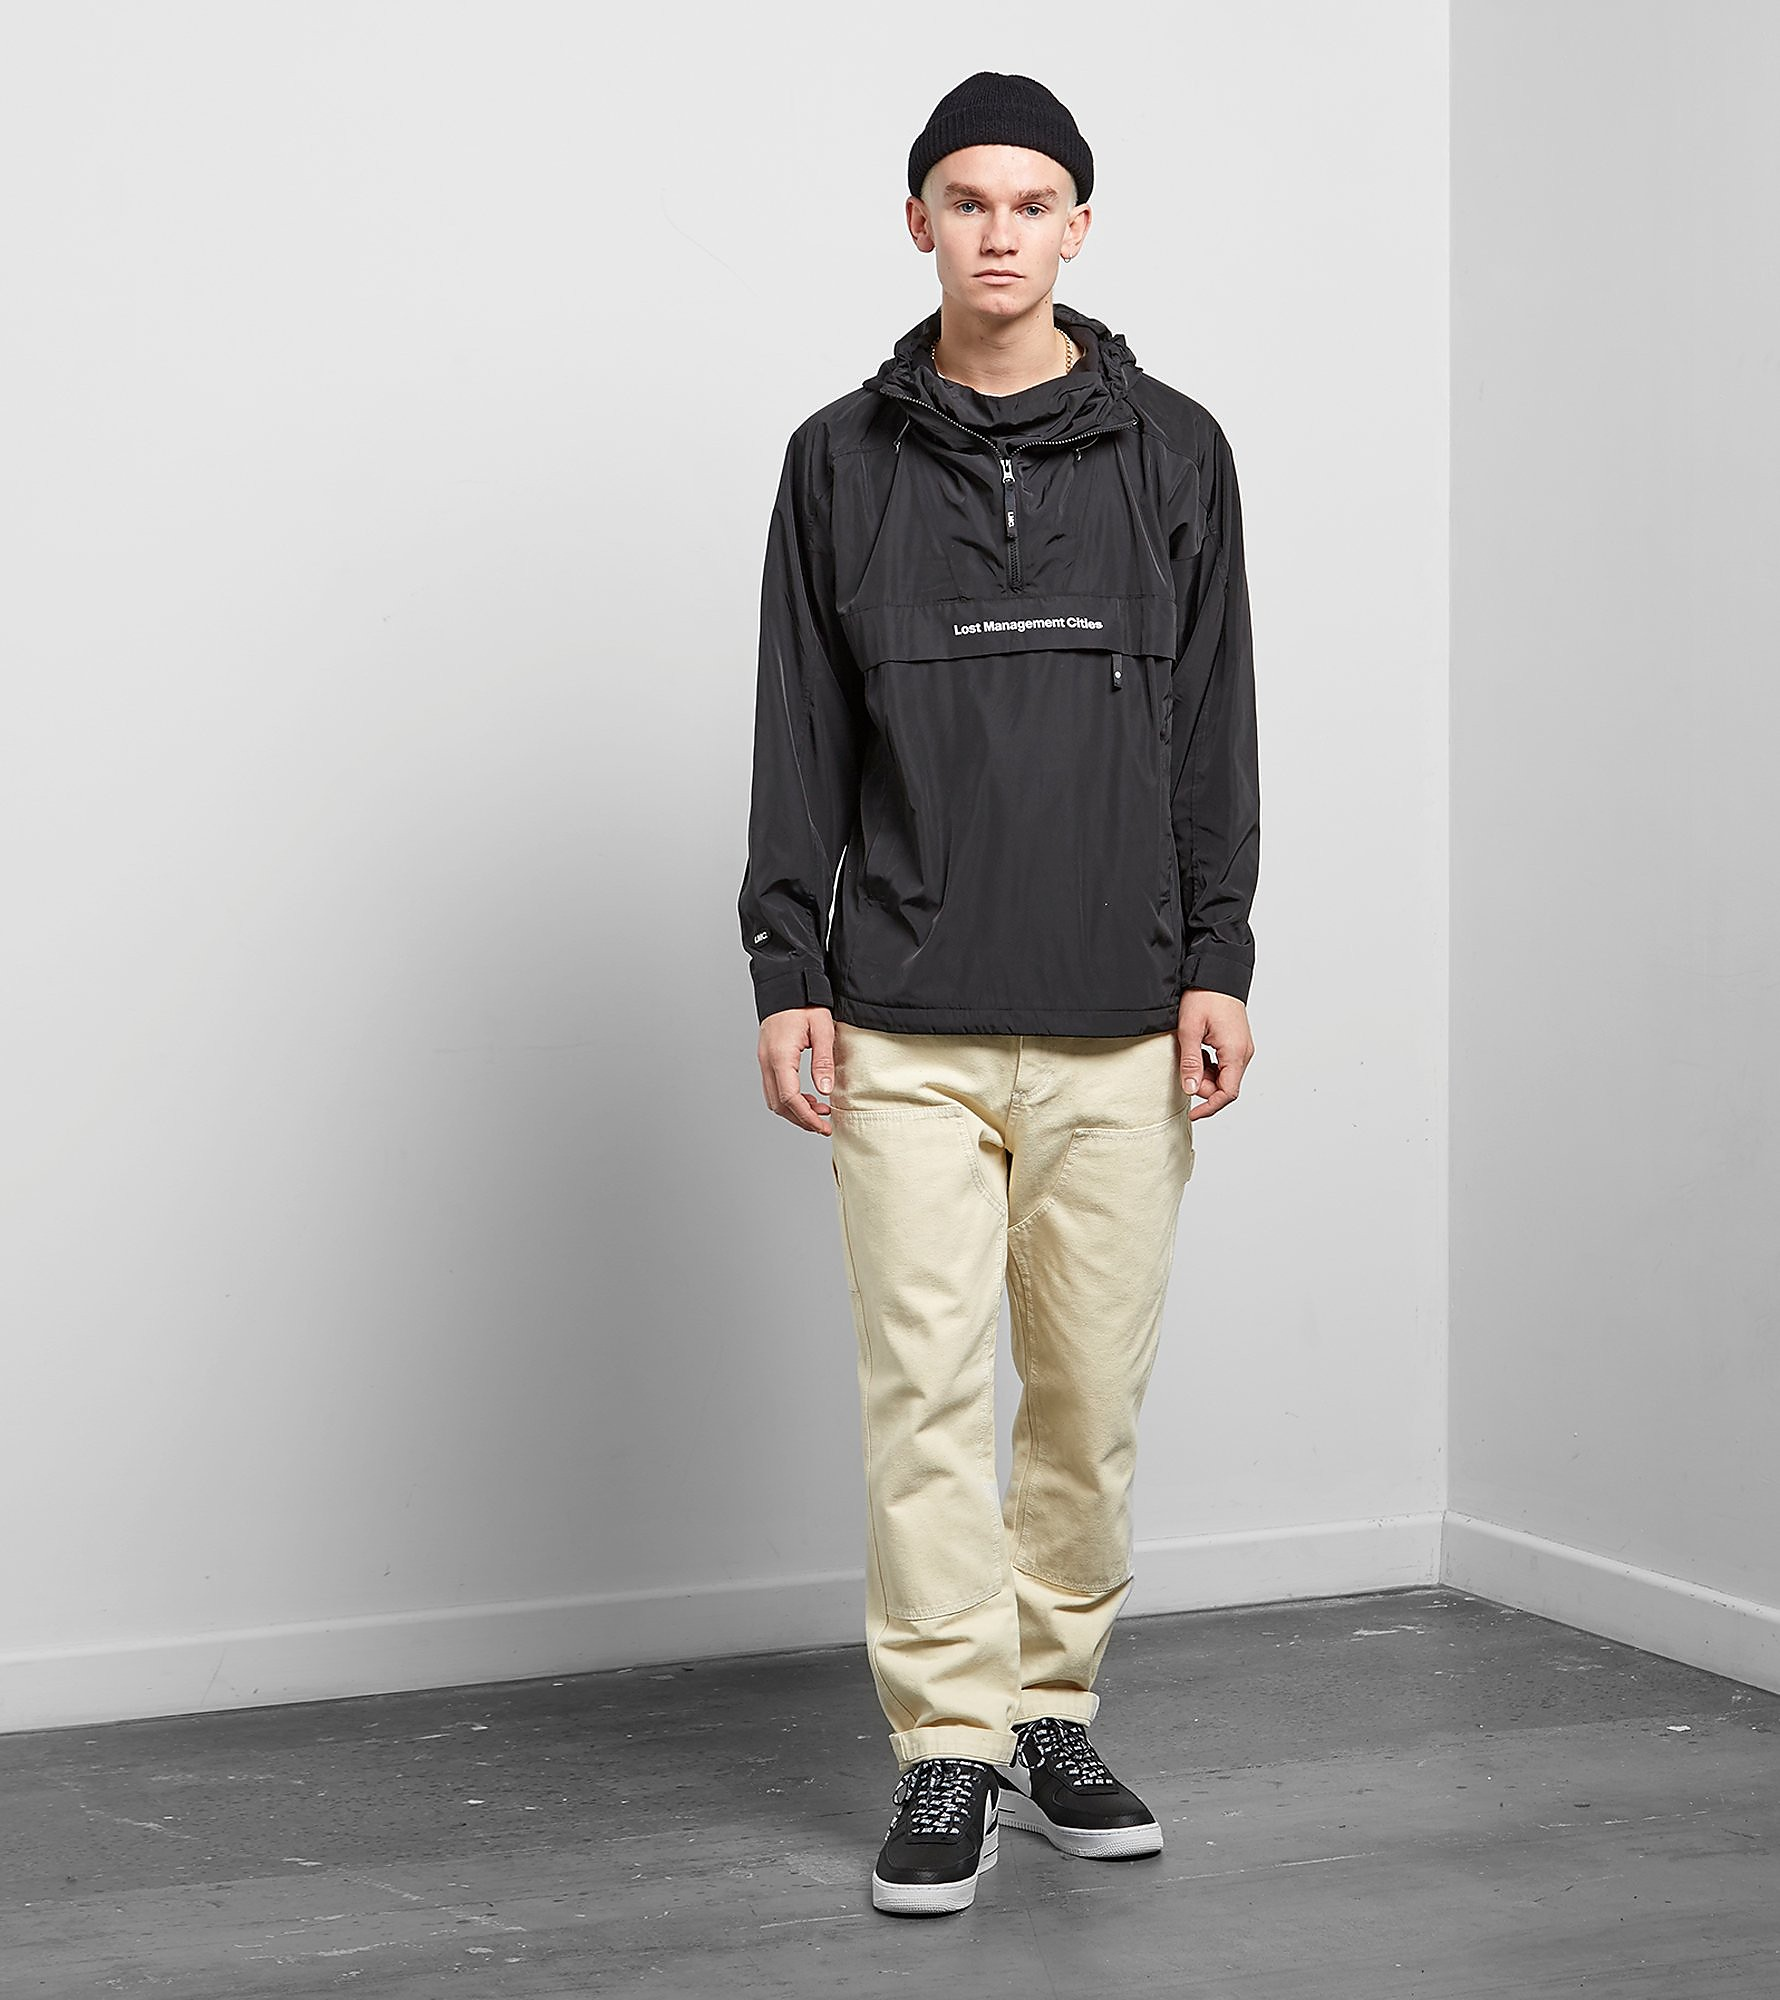 Lost Management Cities Hood Logo Anorak Jas